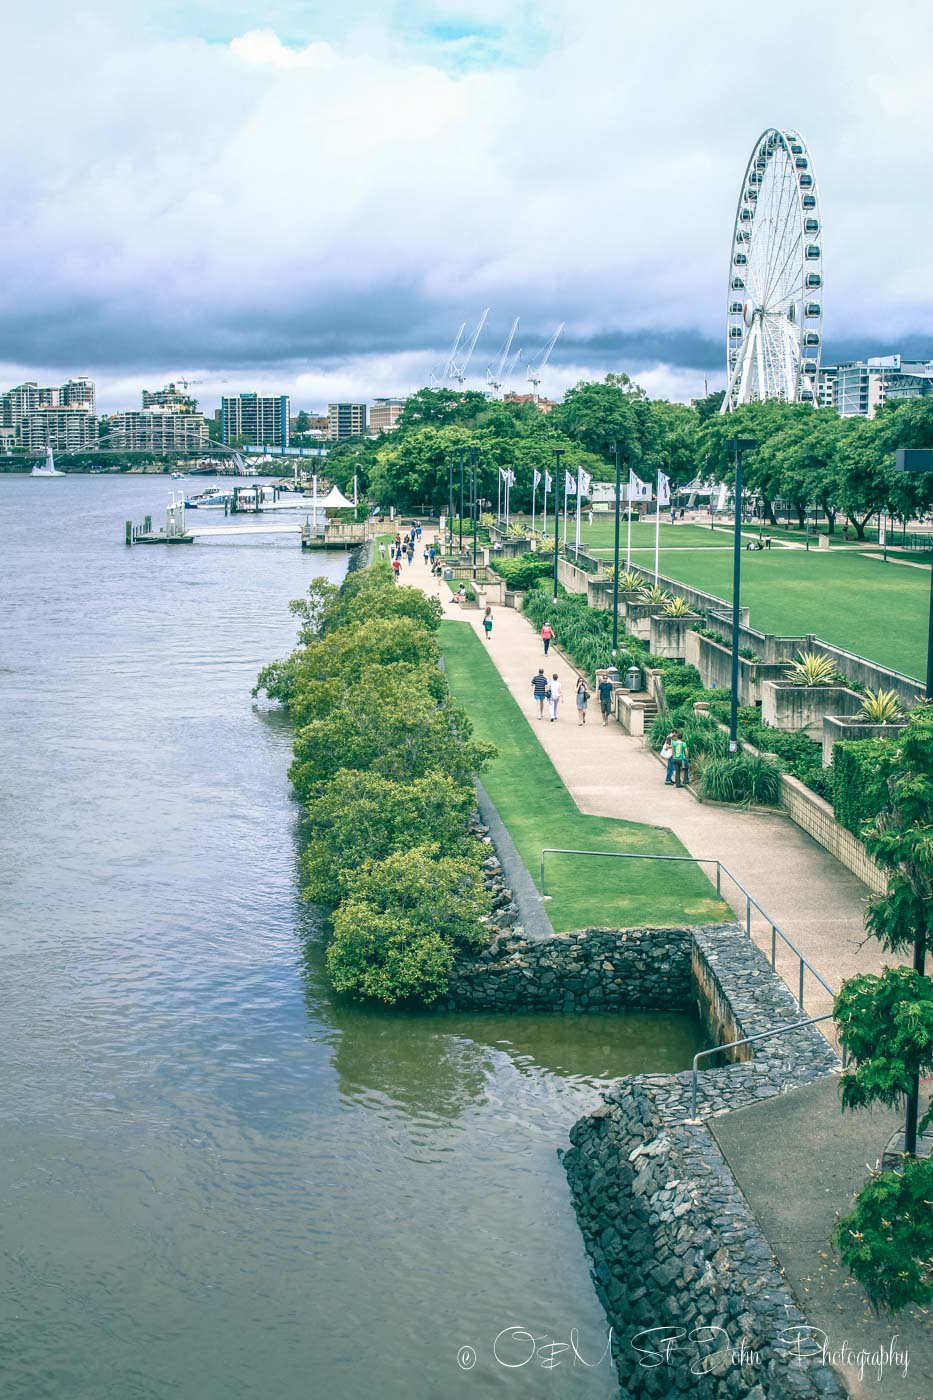 Clem Jones Promenade runs along the river in South Bank. Brisbane